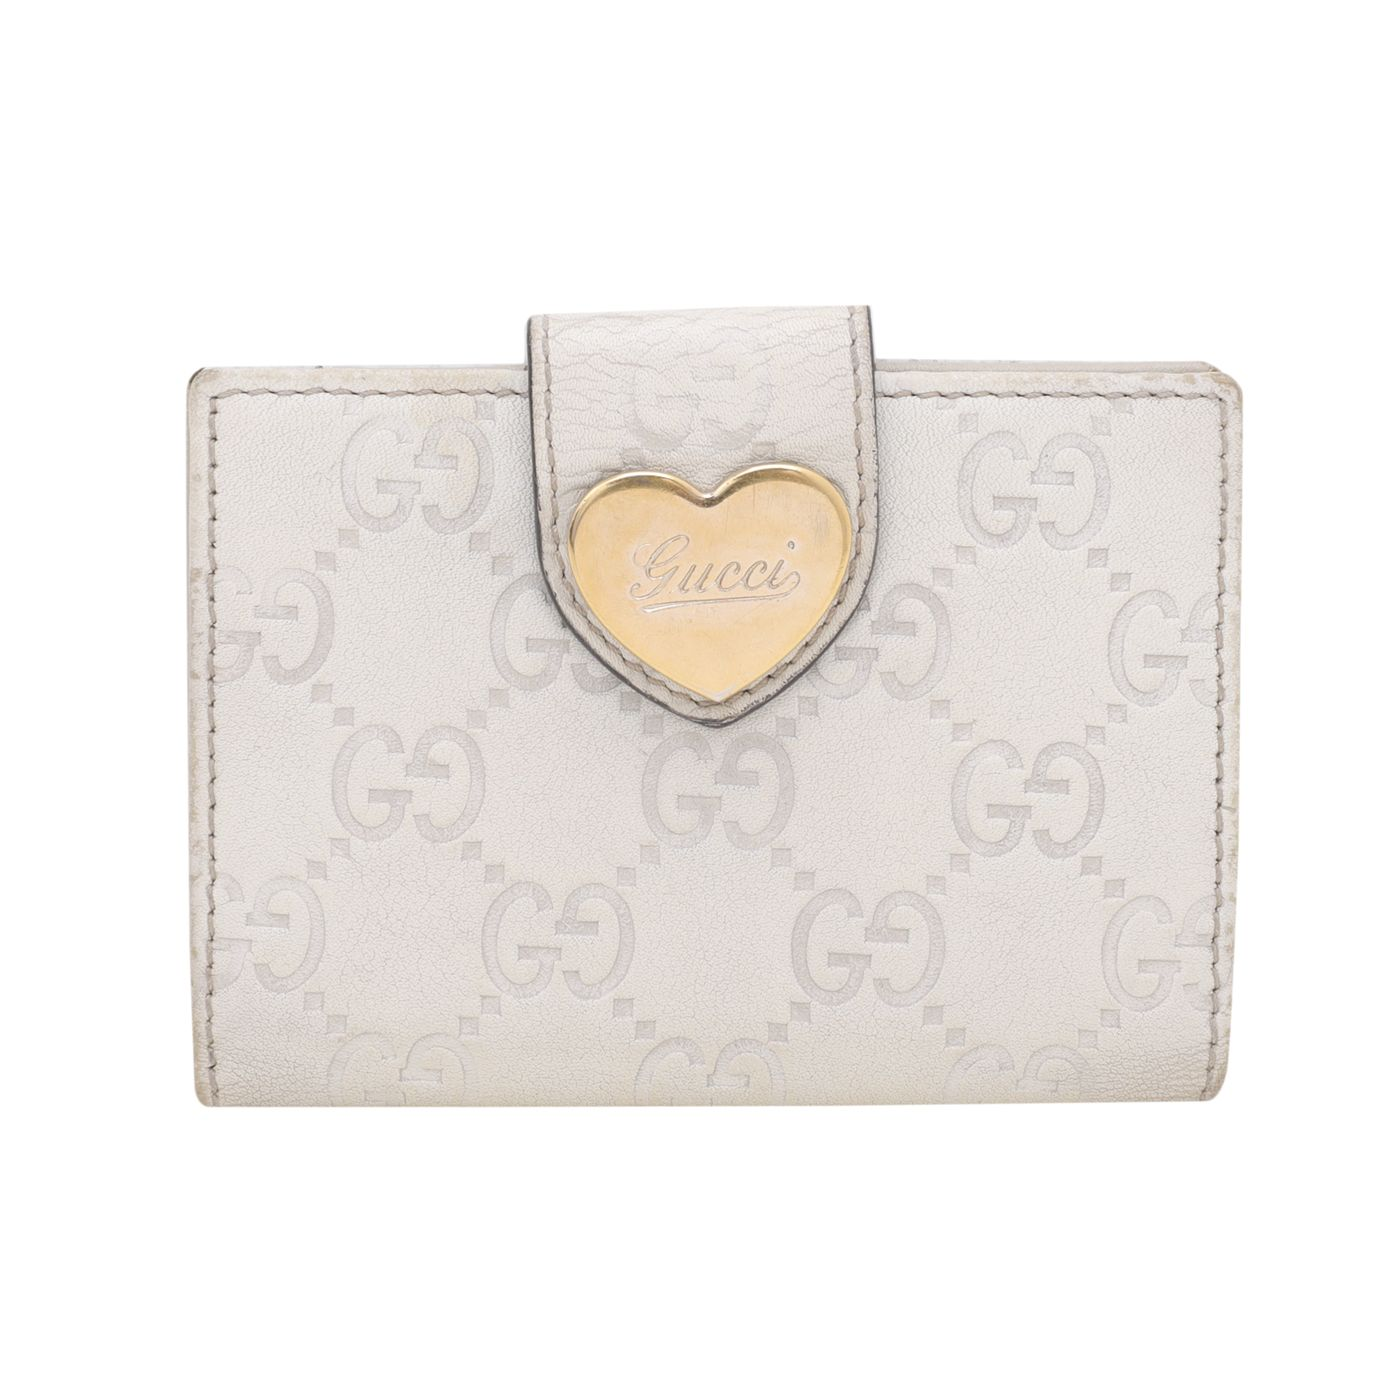 Gucci Off White GG Heart Travel Wallet